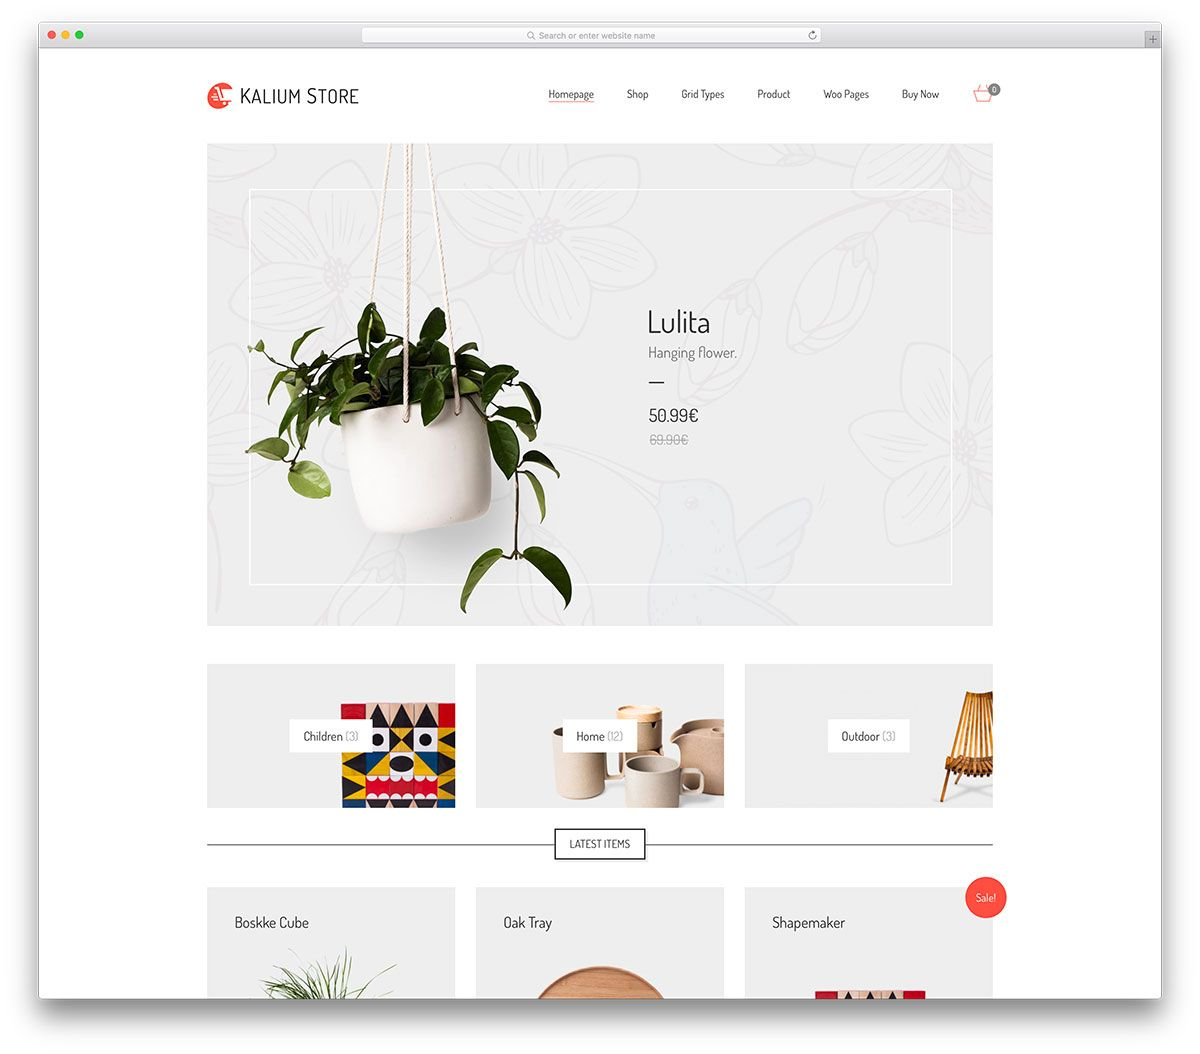 Kaliumsimpleecommercewebsitetemplate E Comerce Site Ideas - Buy ecommerce website templates